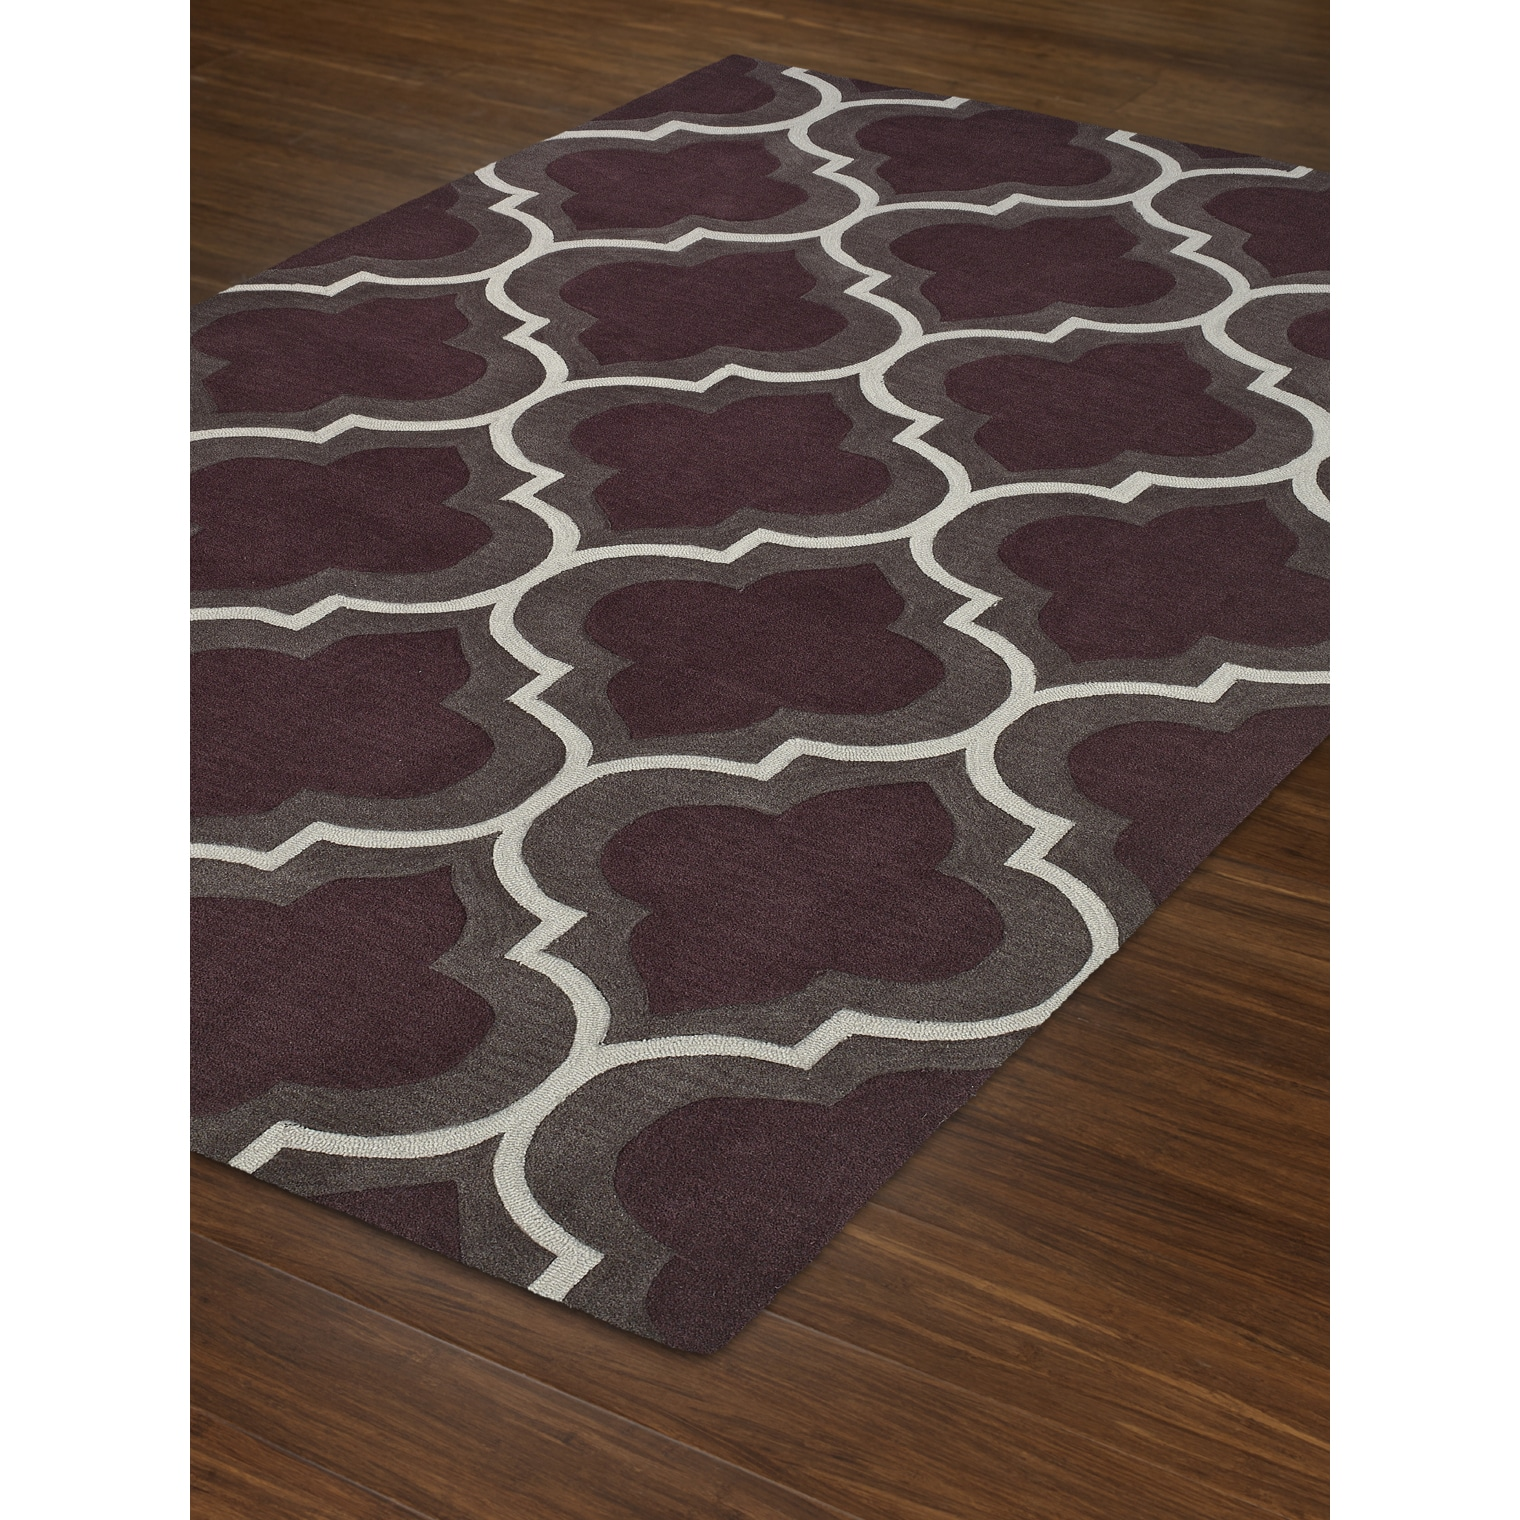 Addison Optics Moroccan Trellis Eggplant White Area Rug On Free Shipping Today 19382423